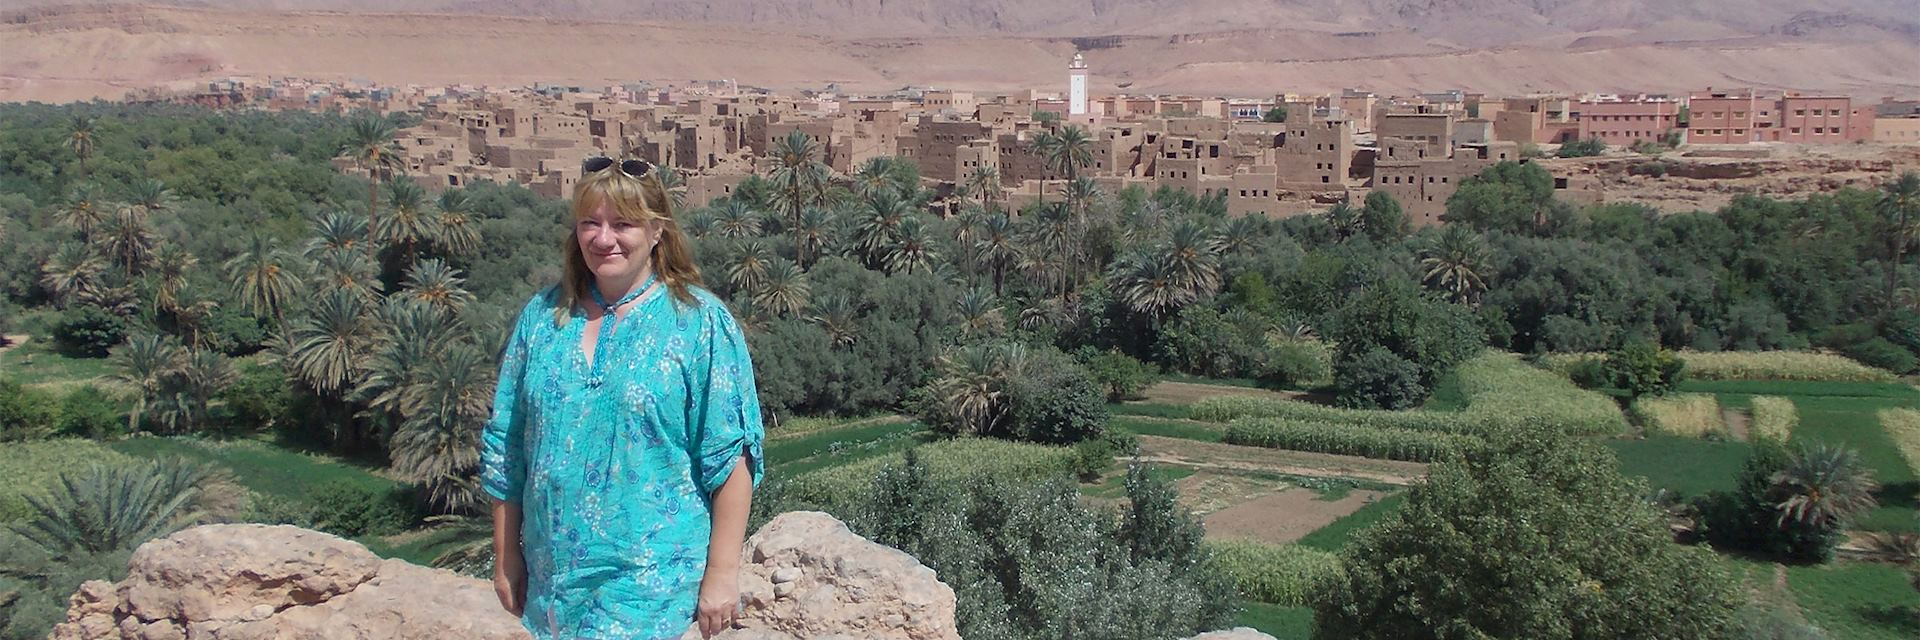 Brigitte visiting the ancient town of Ait Benhaddou, Morocco